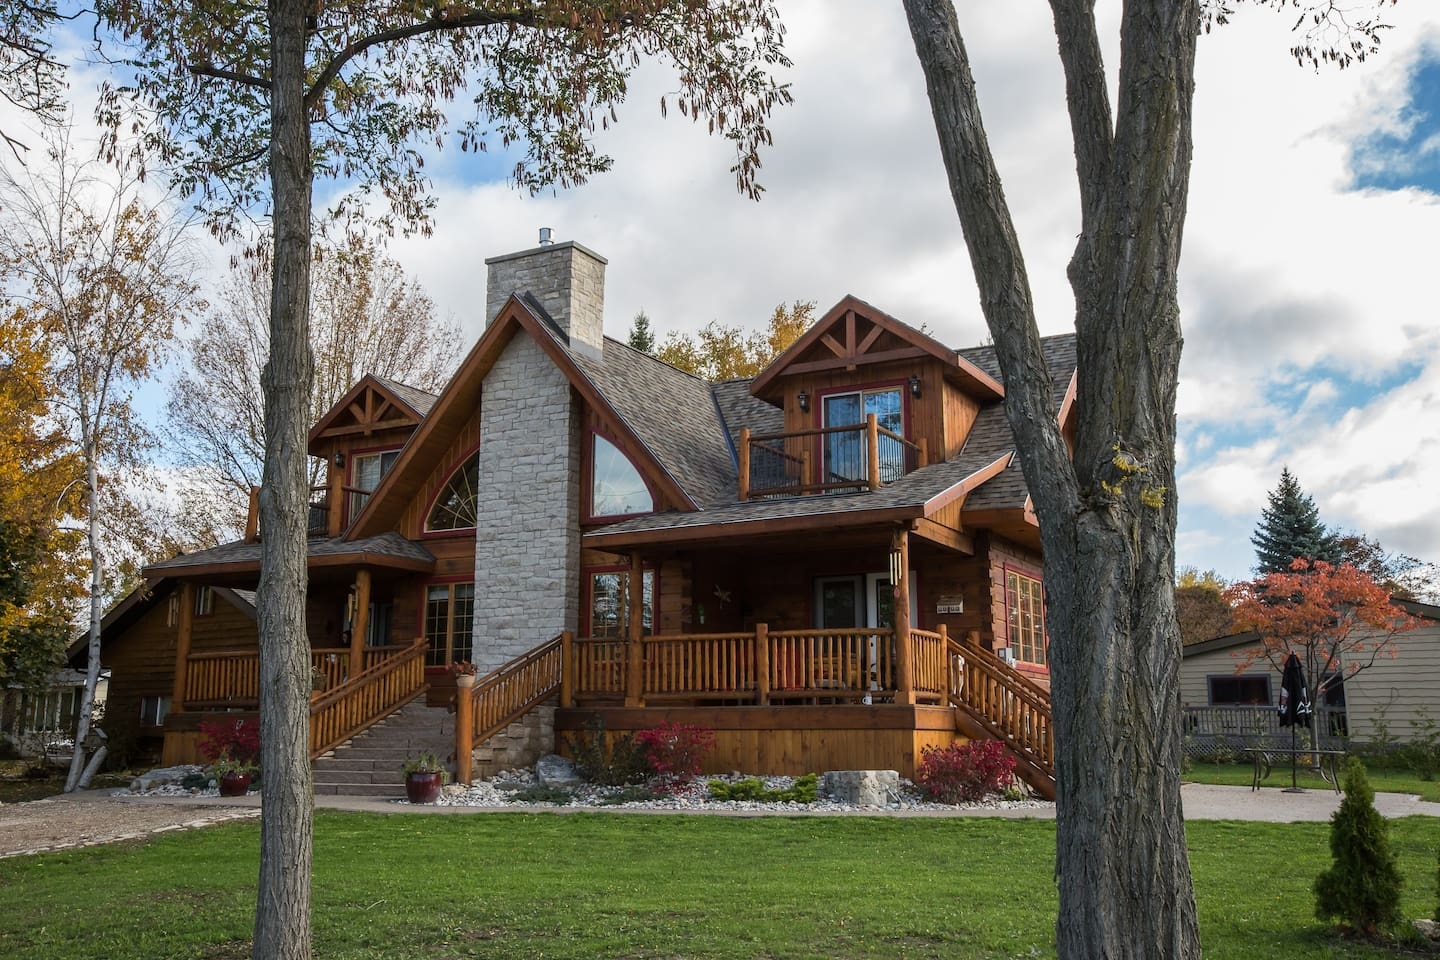 Log Home by the Lake